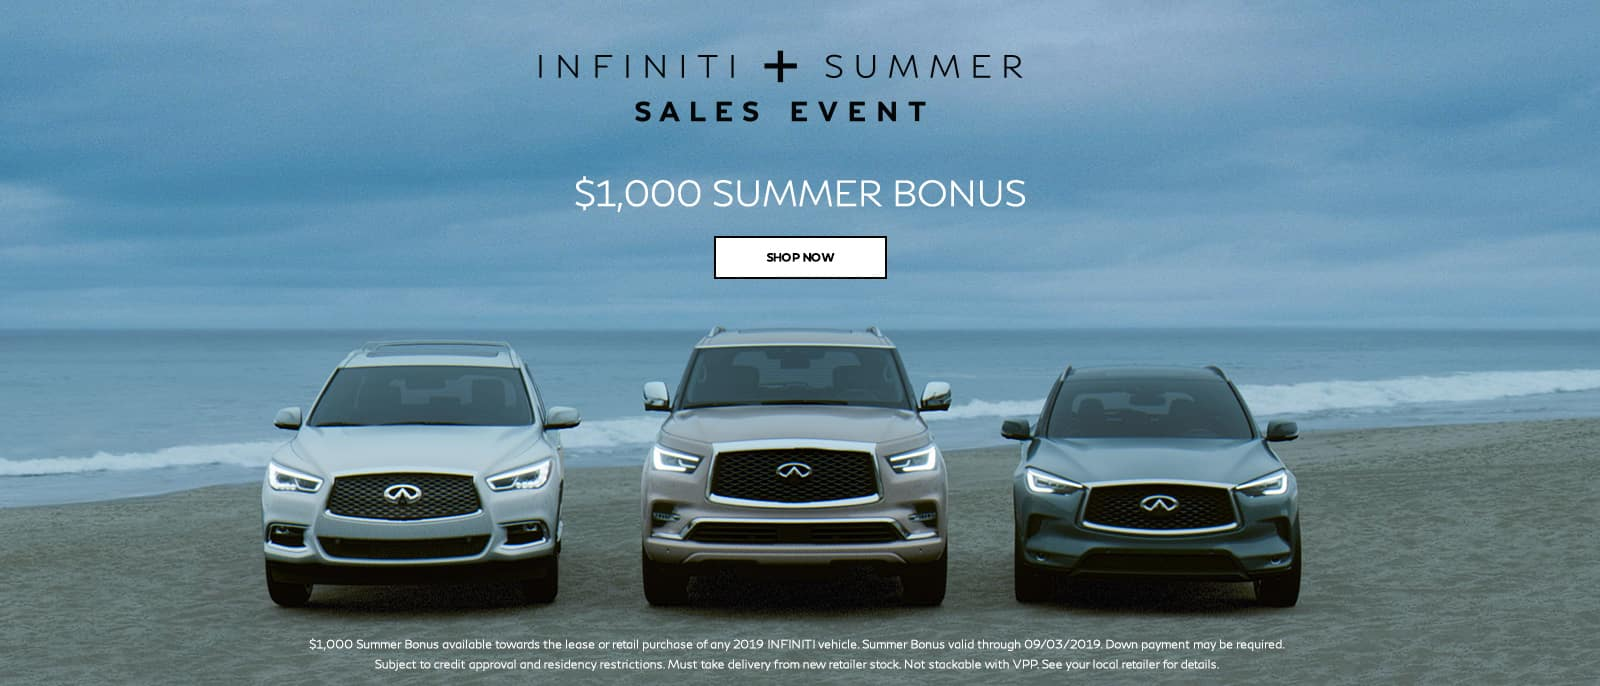 Infiniti Dealership Columbus Ohio >> Infiniti Car Dealership In Columbus Oh Infiniti Of Easton